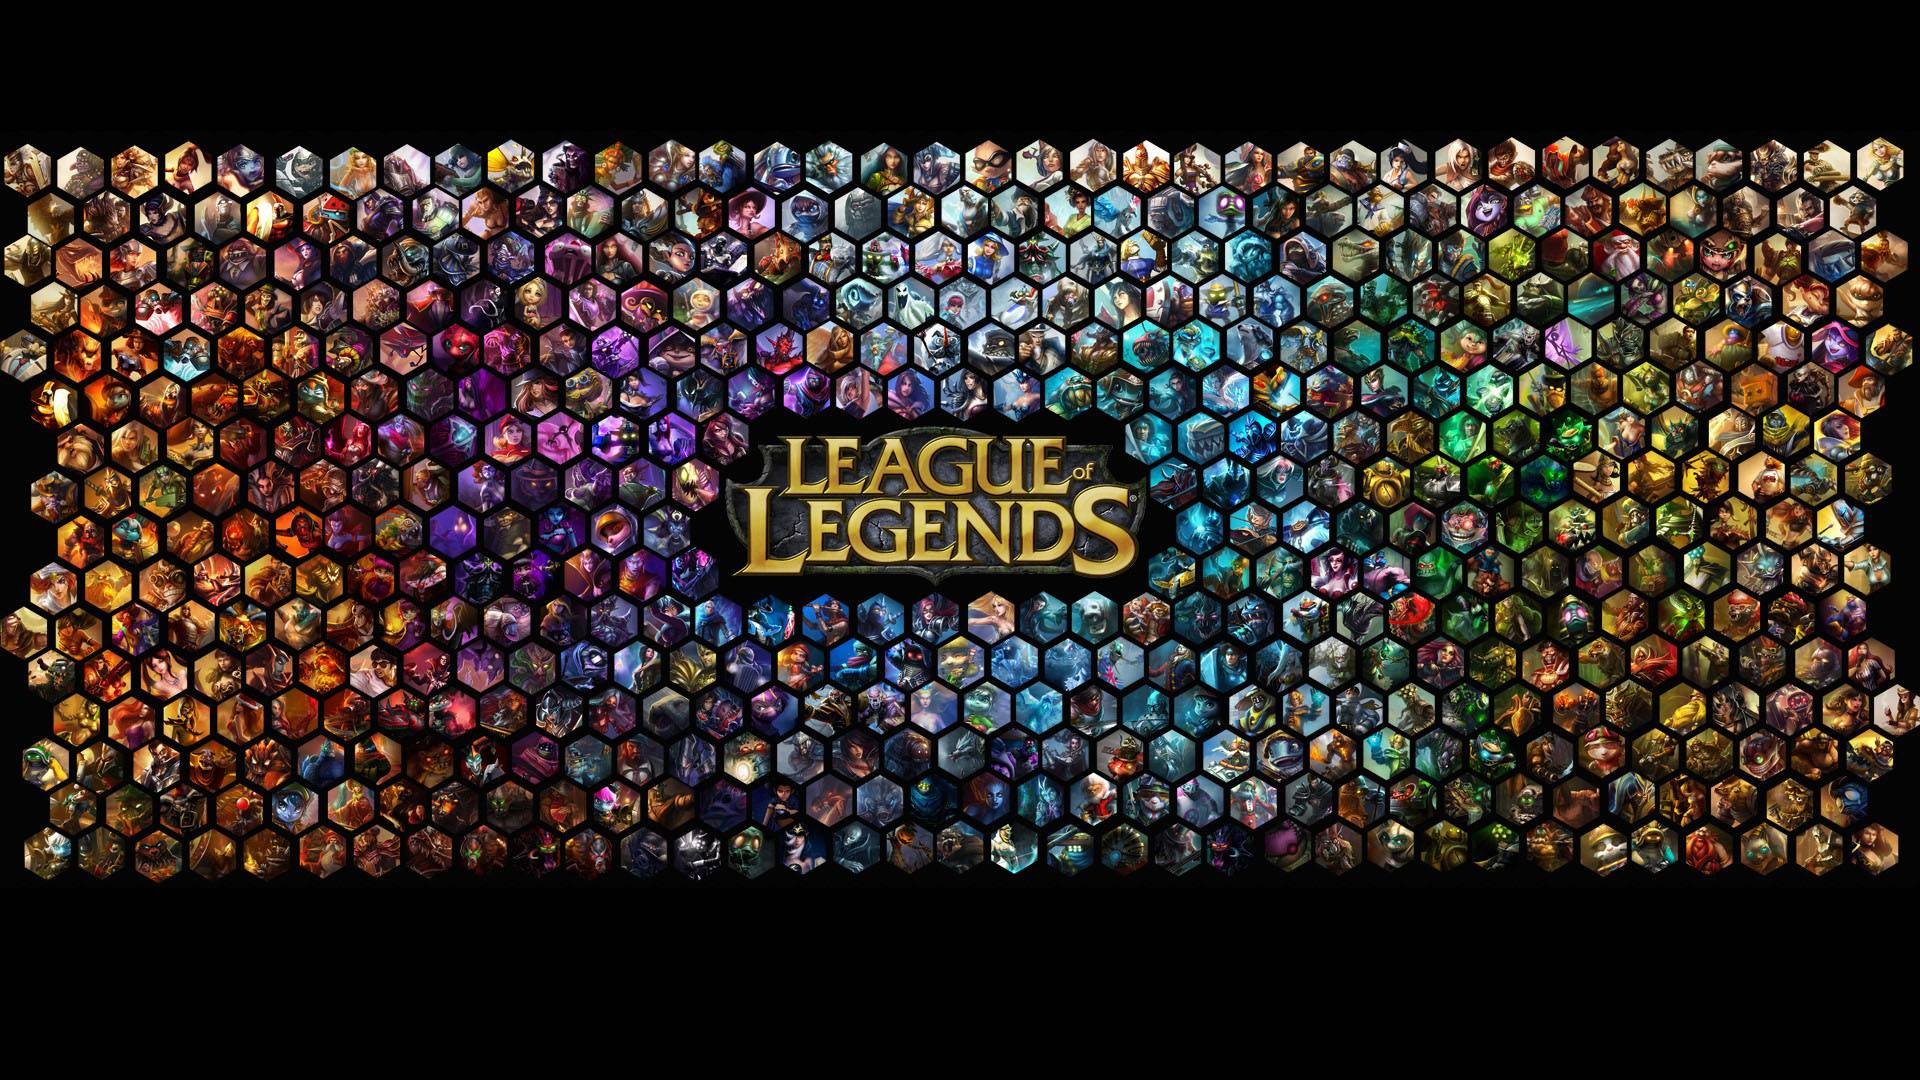 League Of Legends Papéis de Parede HD Planos de Fundo